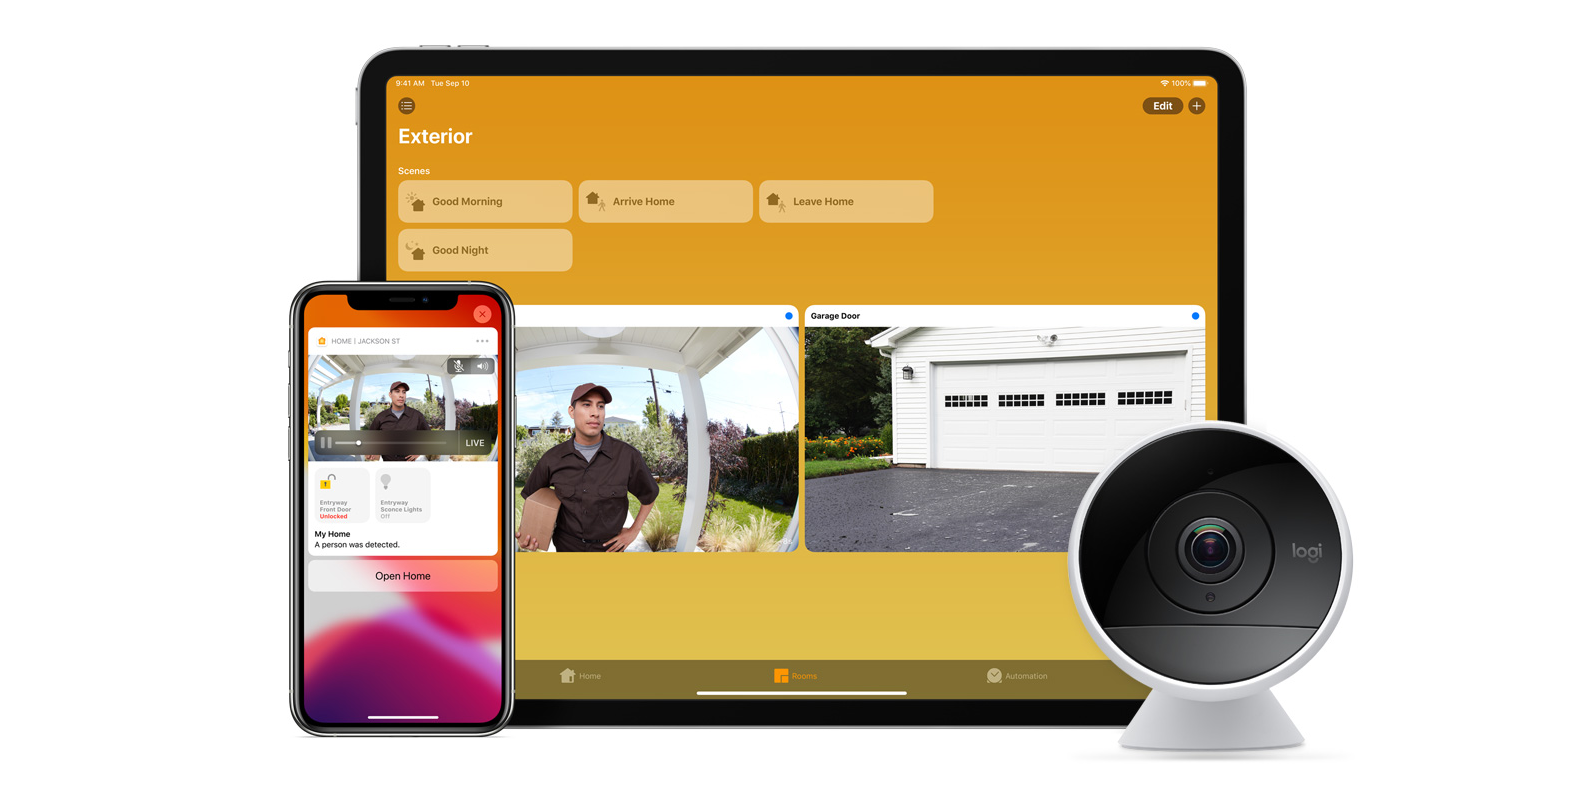 Apple lists the cameras and routers that will be compatible with the latest HomeKit features